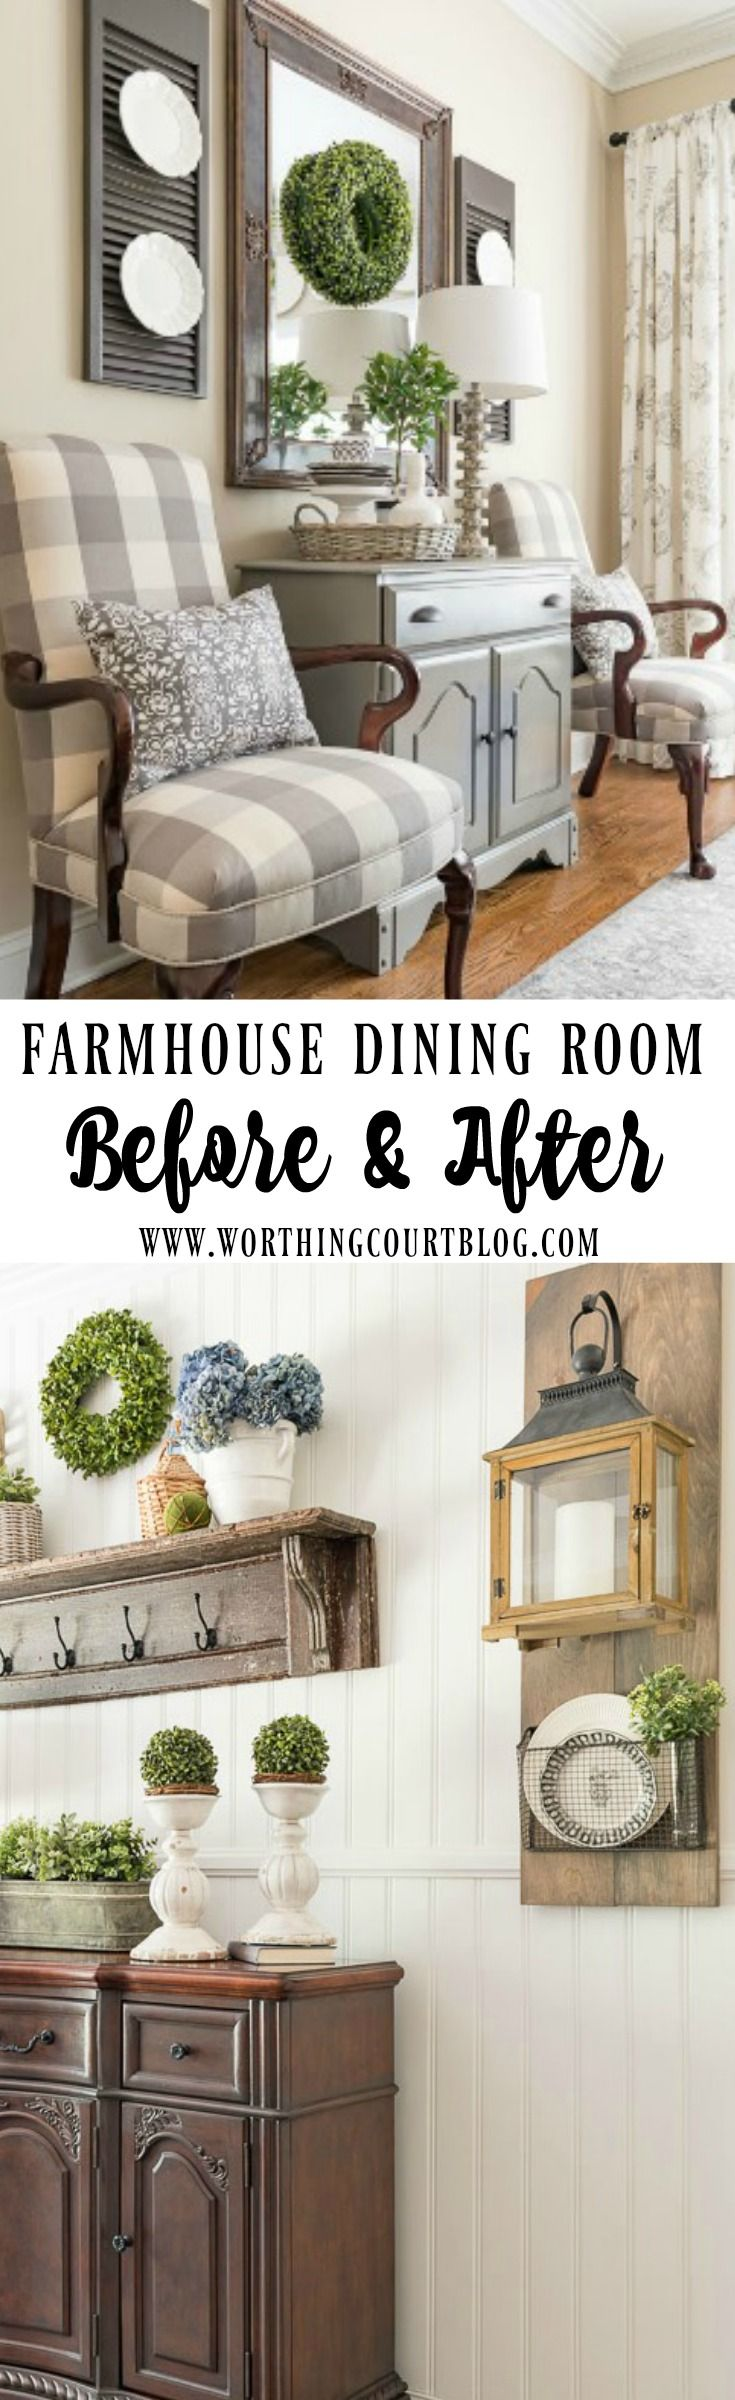 Dining Room Inspirations best 25+ dining room decorating ideas only on pinterest | dining